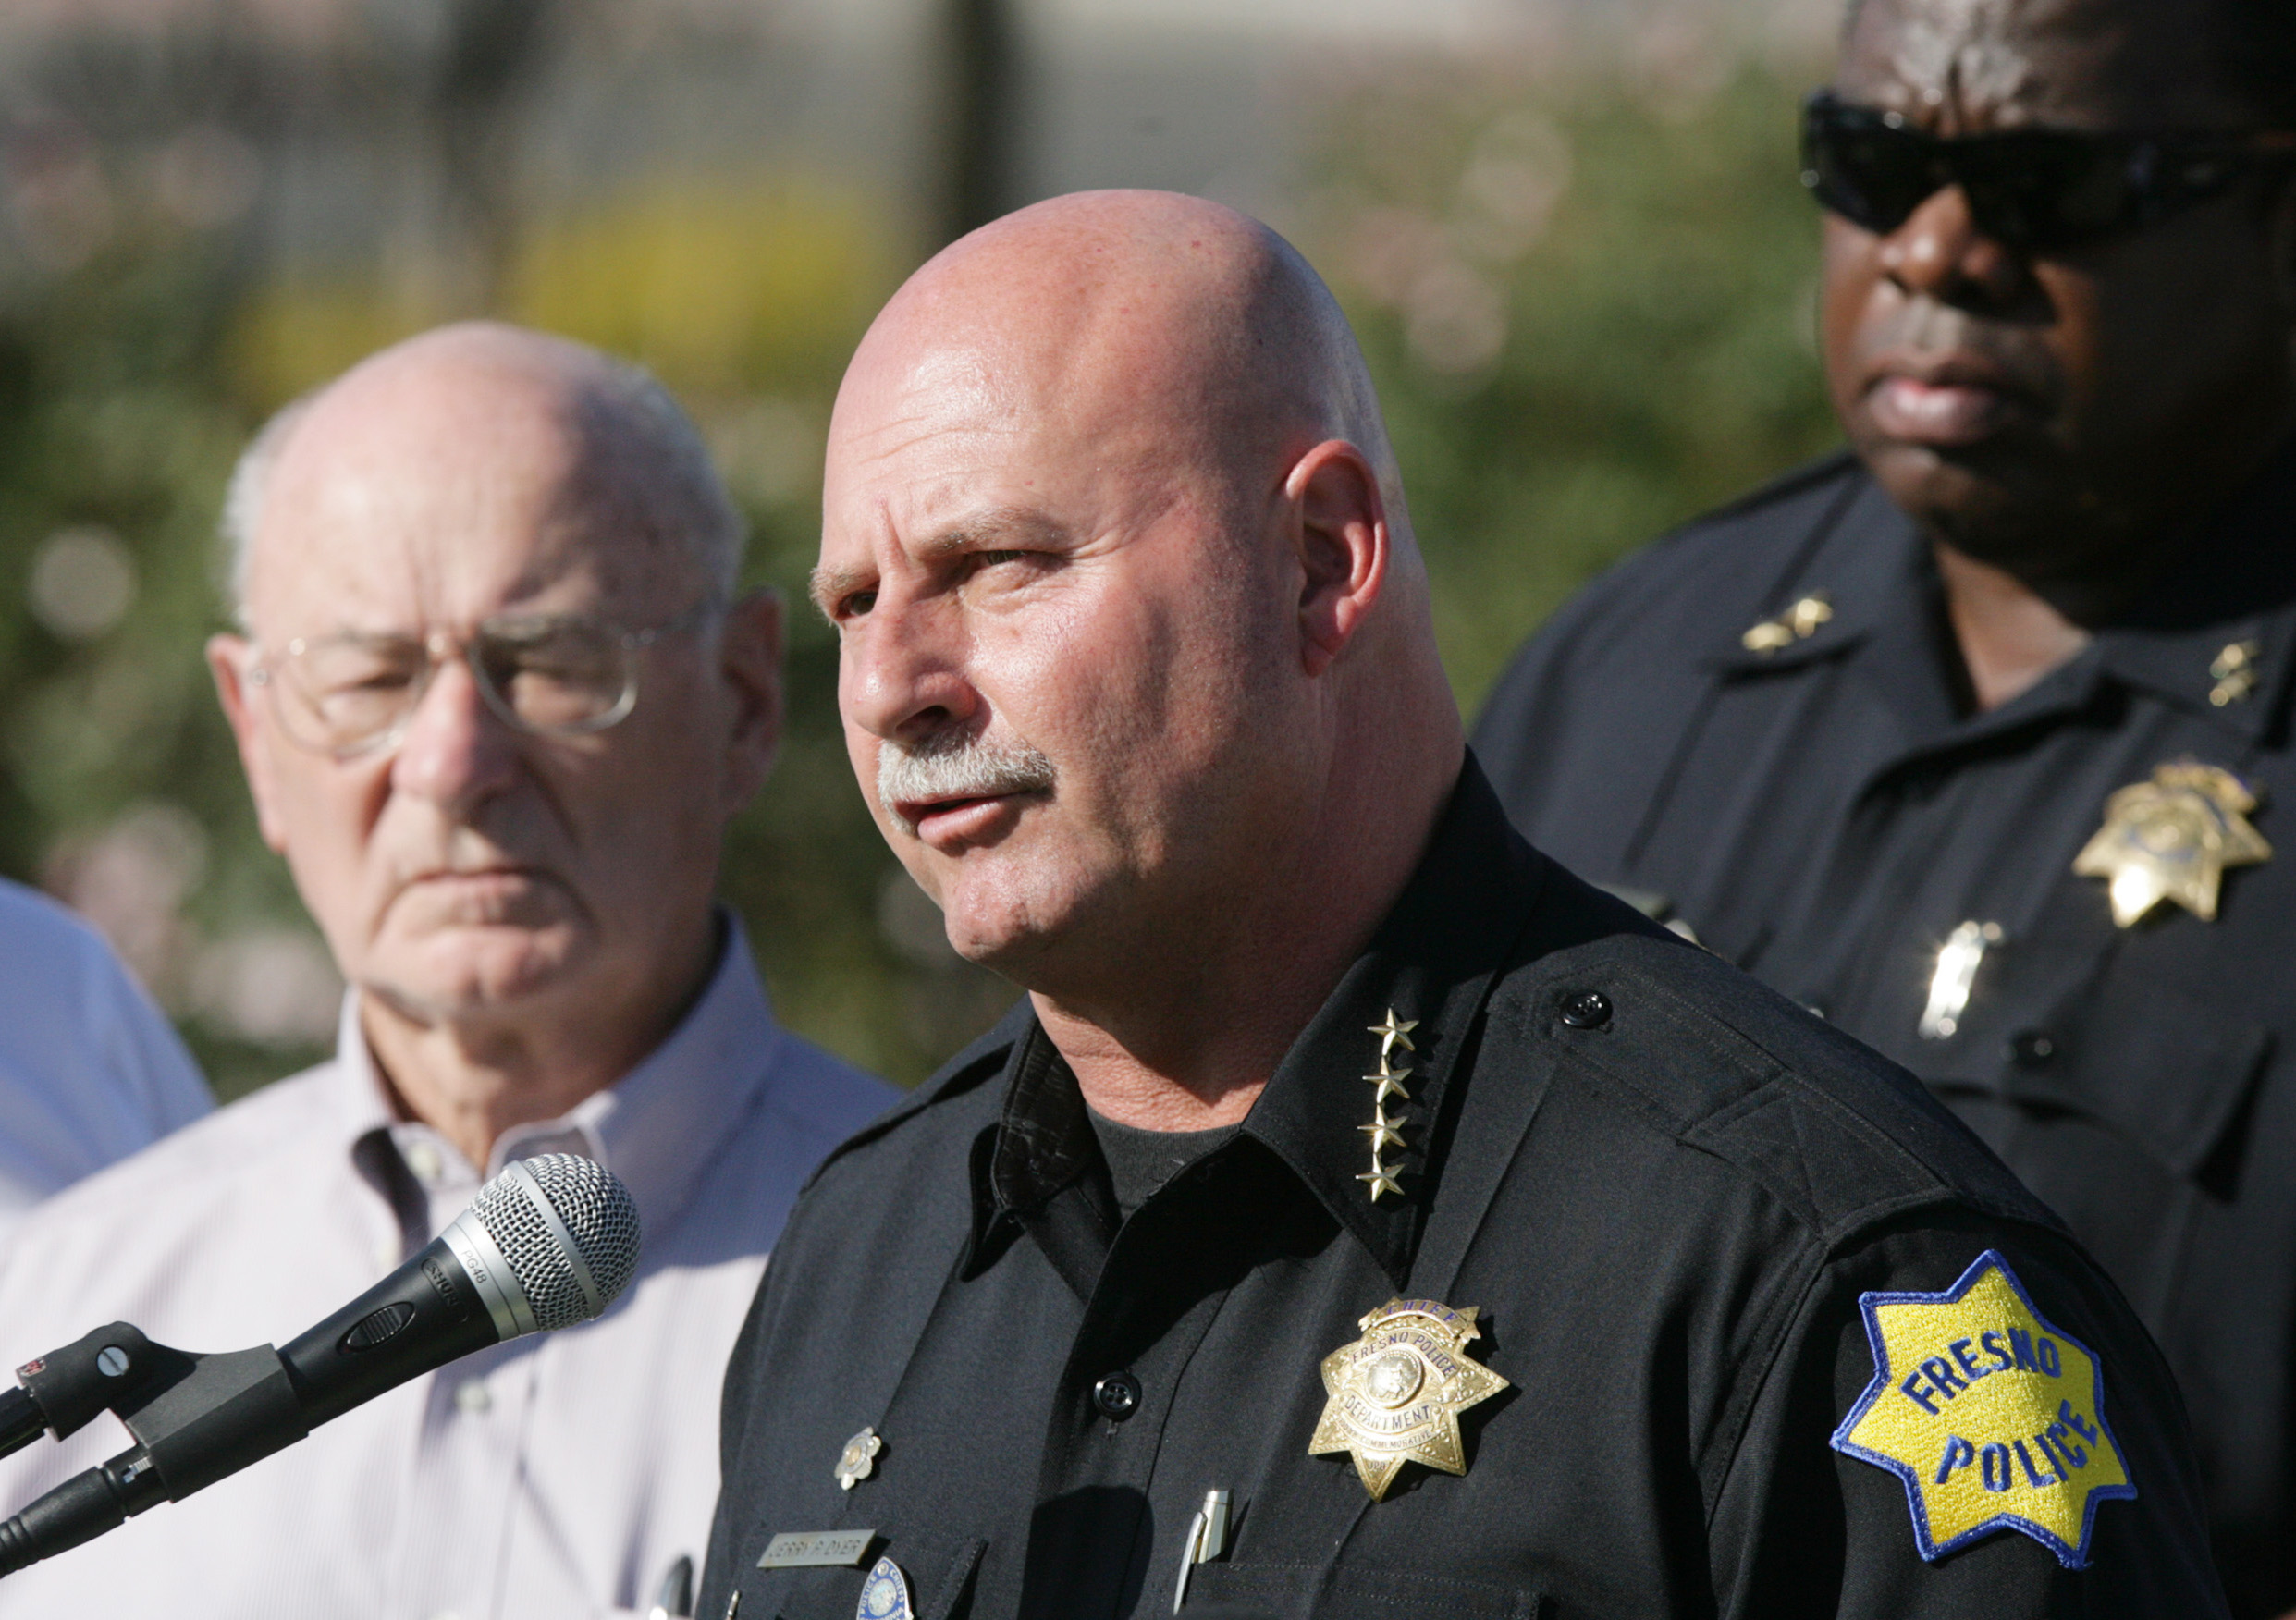 Fresno police chief Jerry Dyer gives a news conference in Central Fresno.